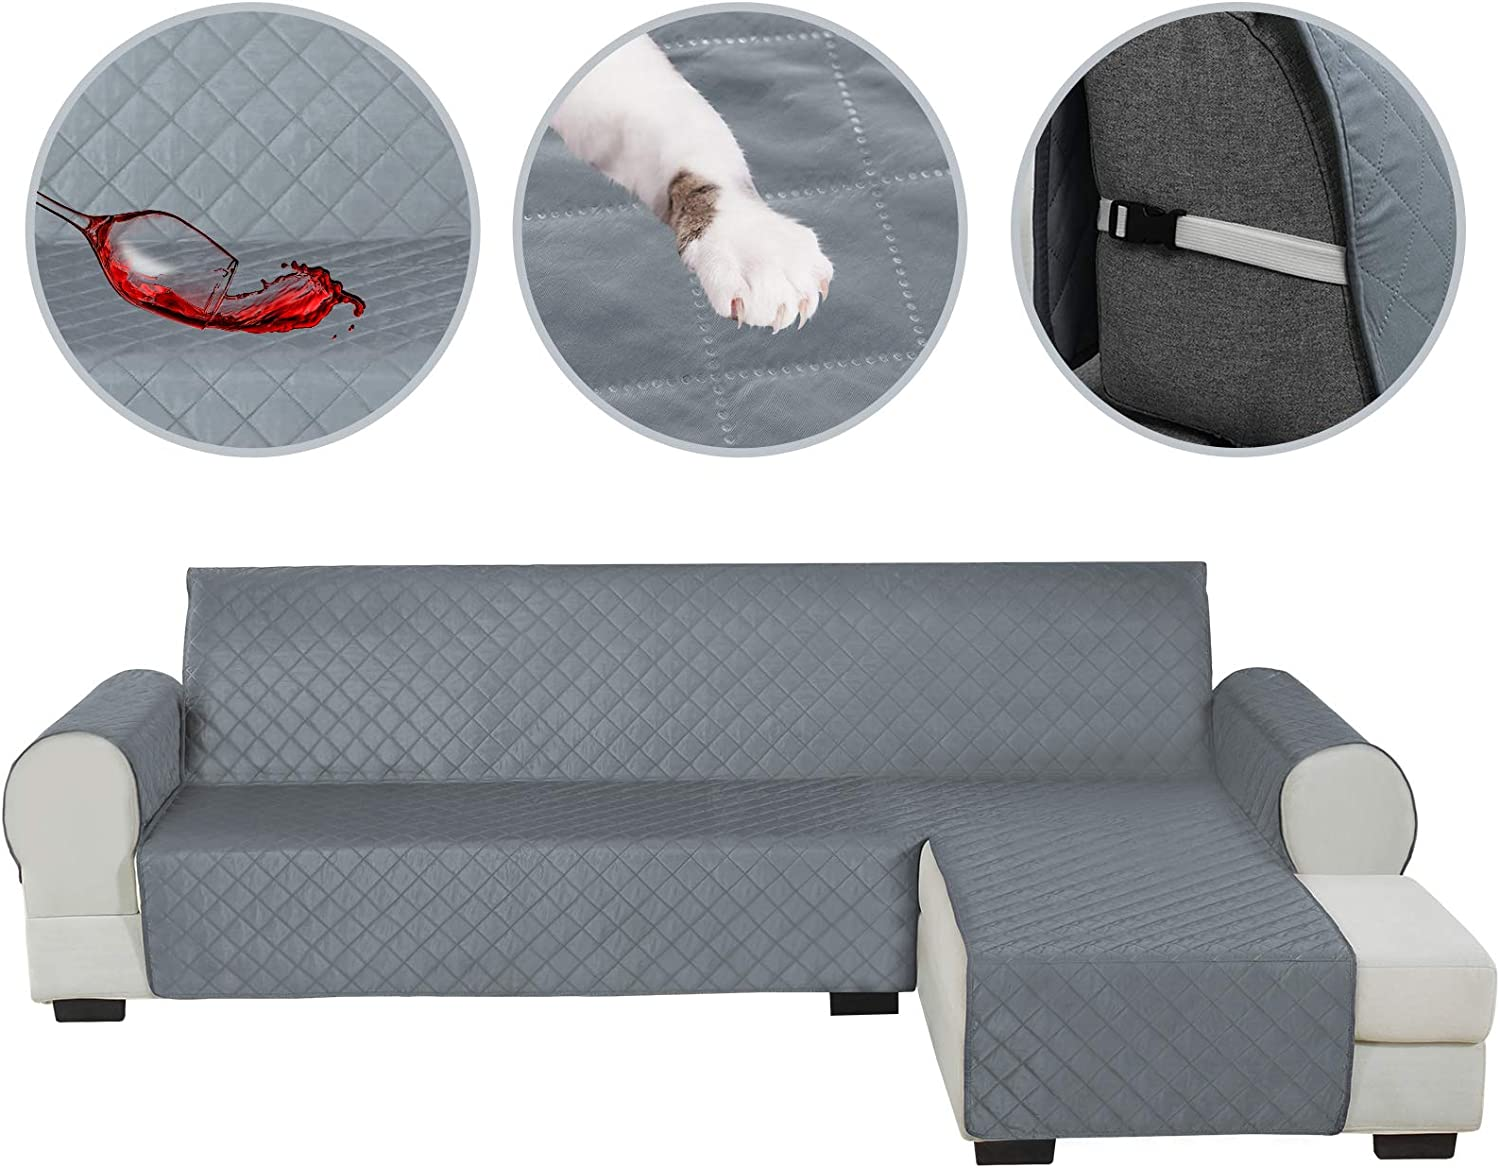 HDCAXKJ Sectional Couch Covers for Dogs Water Resistant L Shape Sofa Cover Pet Friendly Sectional Slipcovers Living Room Reversible Non Slip Furniture Protector with Straps Washable (Gray, Small)